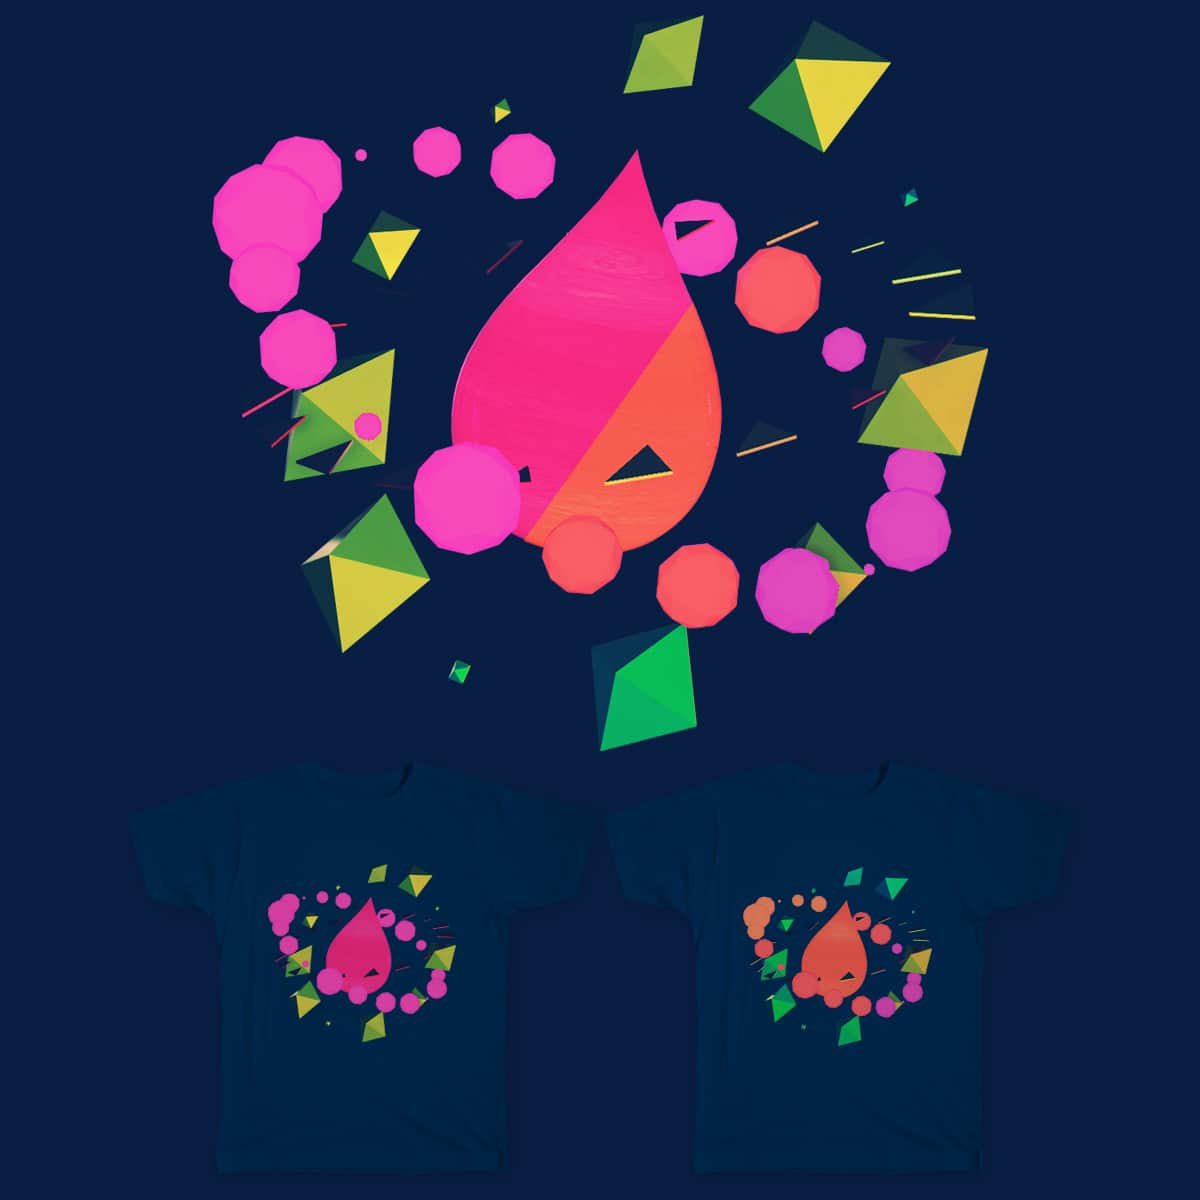 Tear Drop Planet by p0th3ad on Threadless